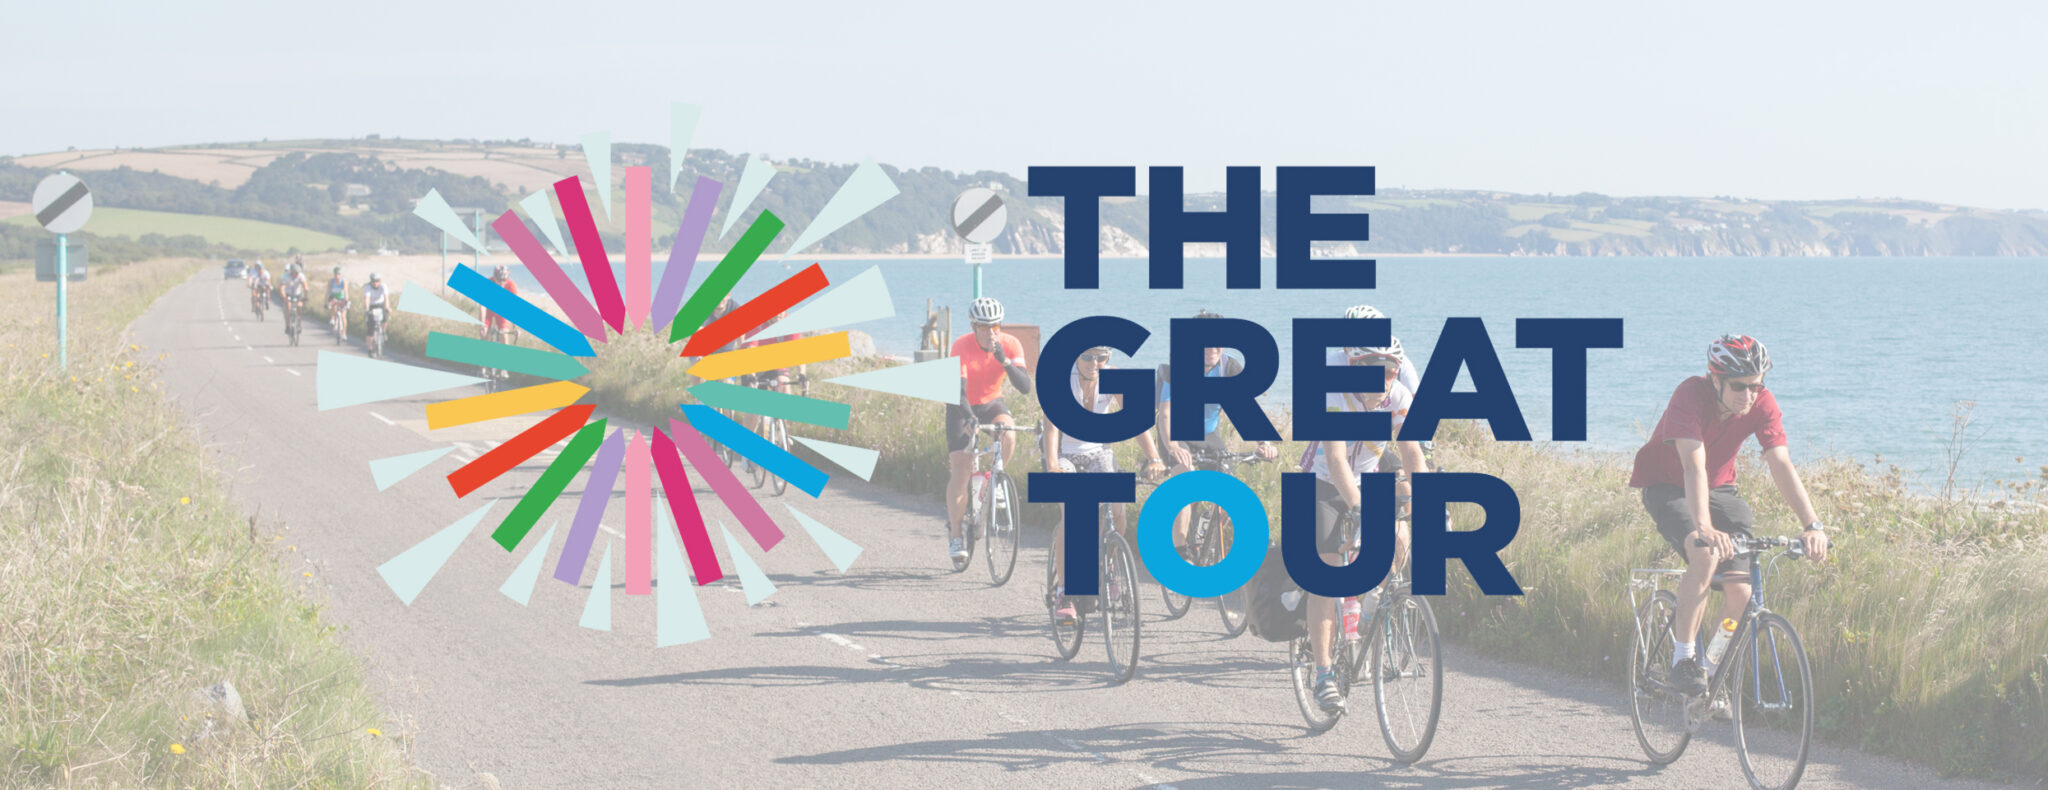 The Great Tour - Find out More